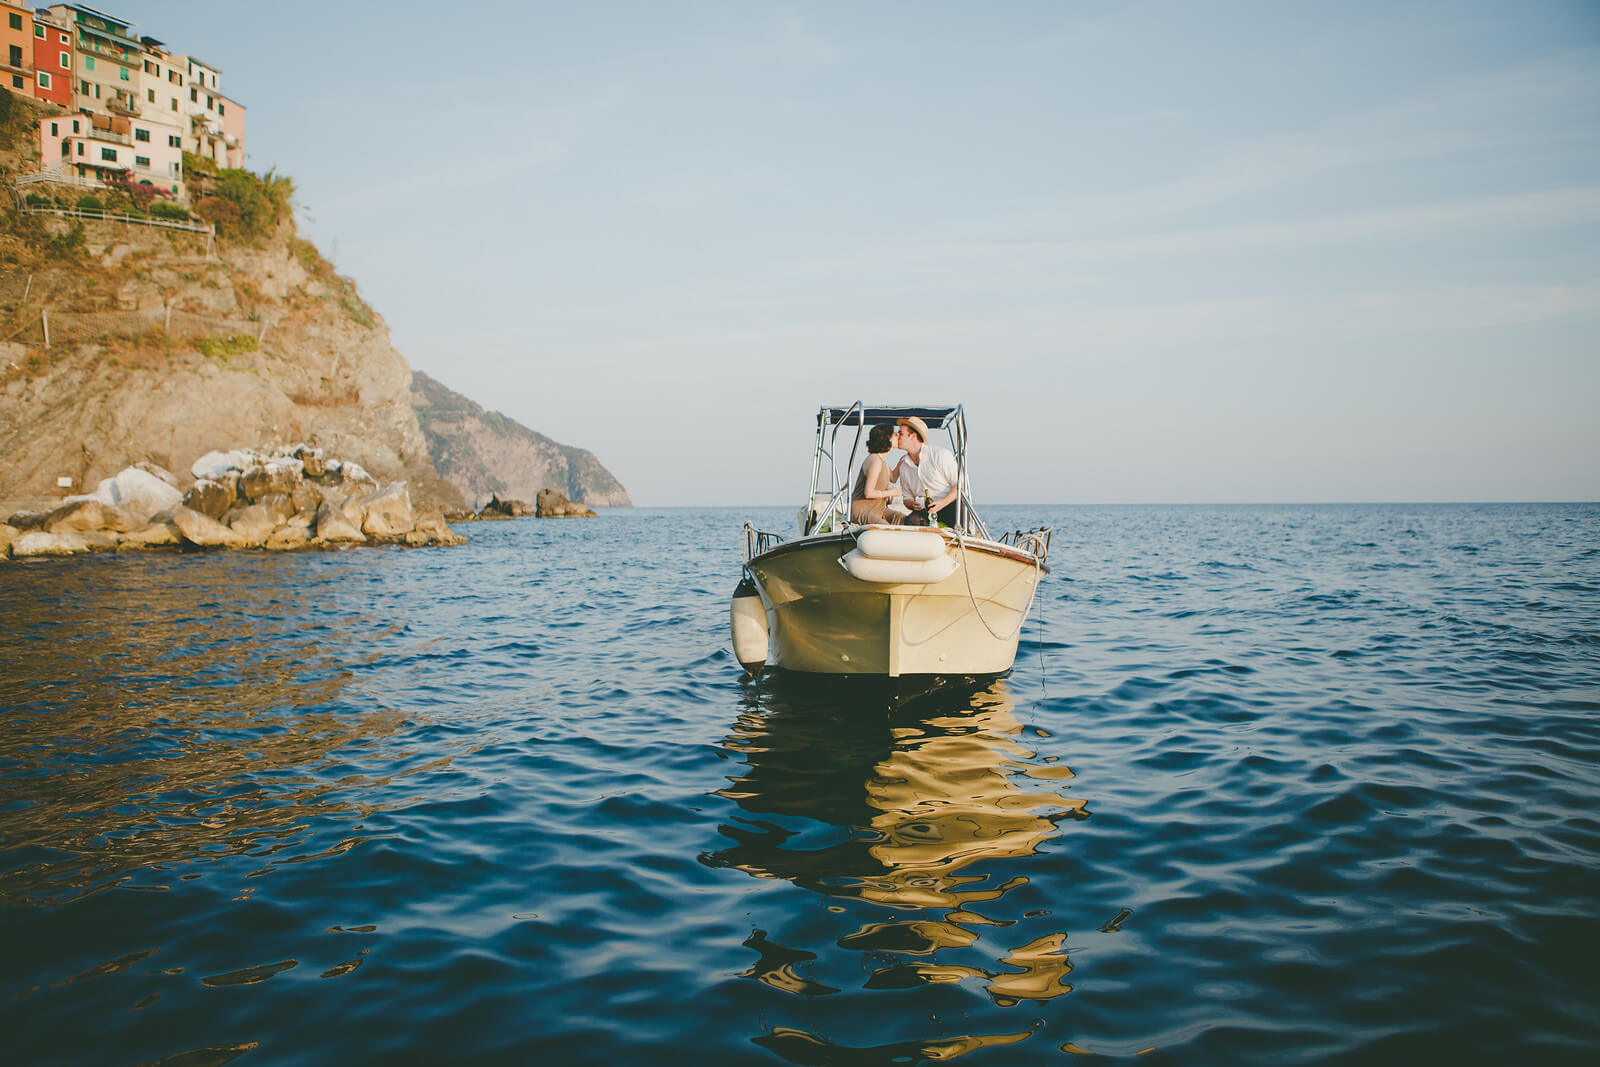 Two people kissing on a small boat in the waters of Cinque Terre, Italy